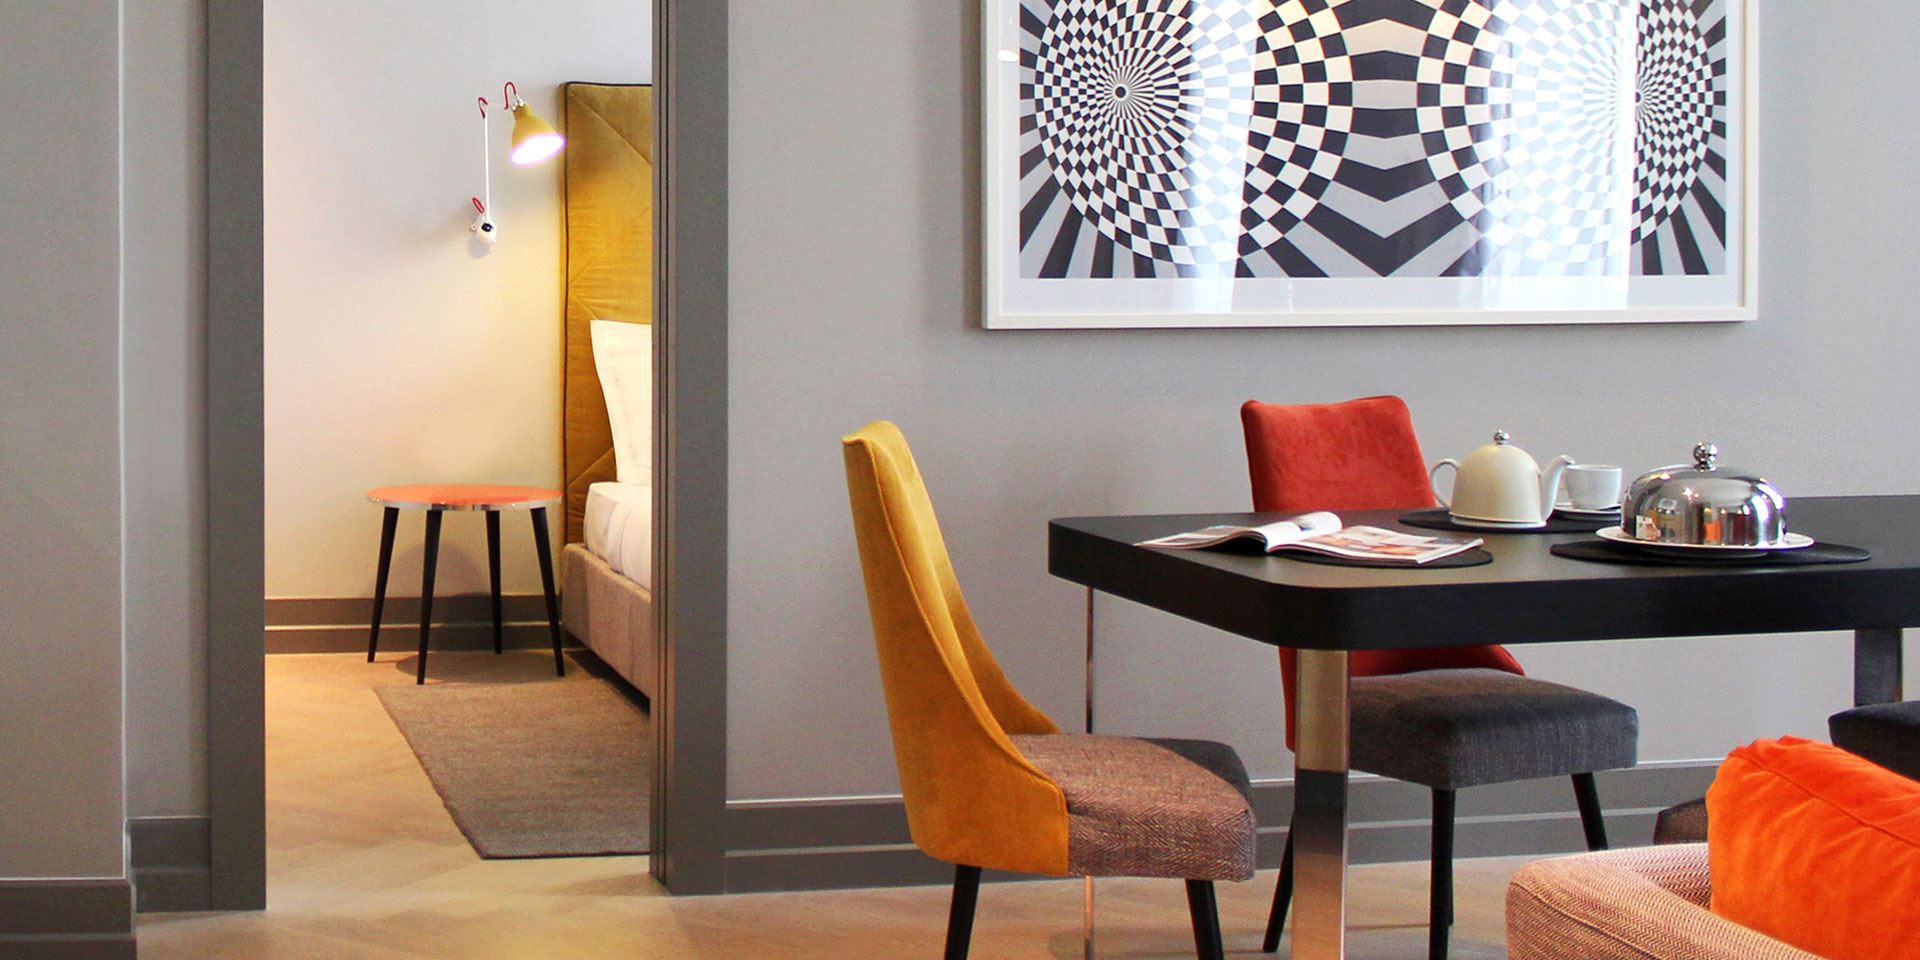 H15BoutiqueHotel-Warsaw-Poland-Europe-rooms.jpg